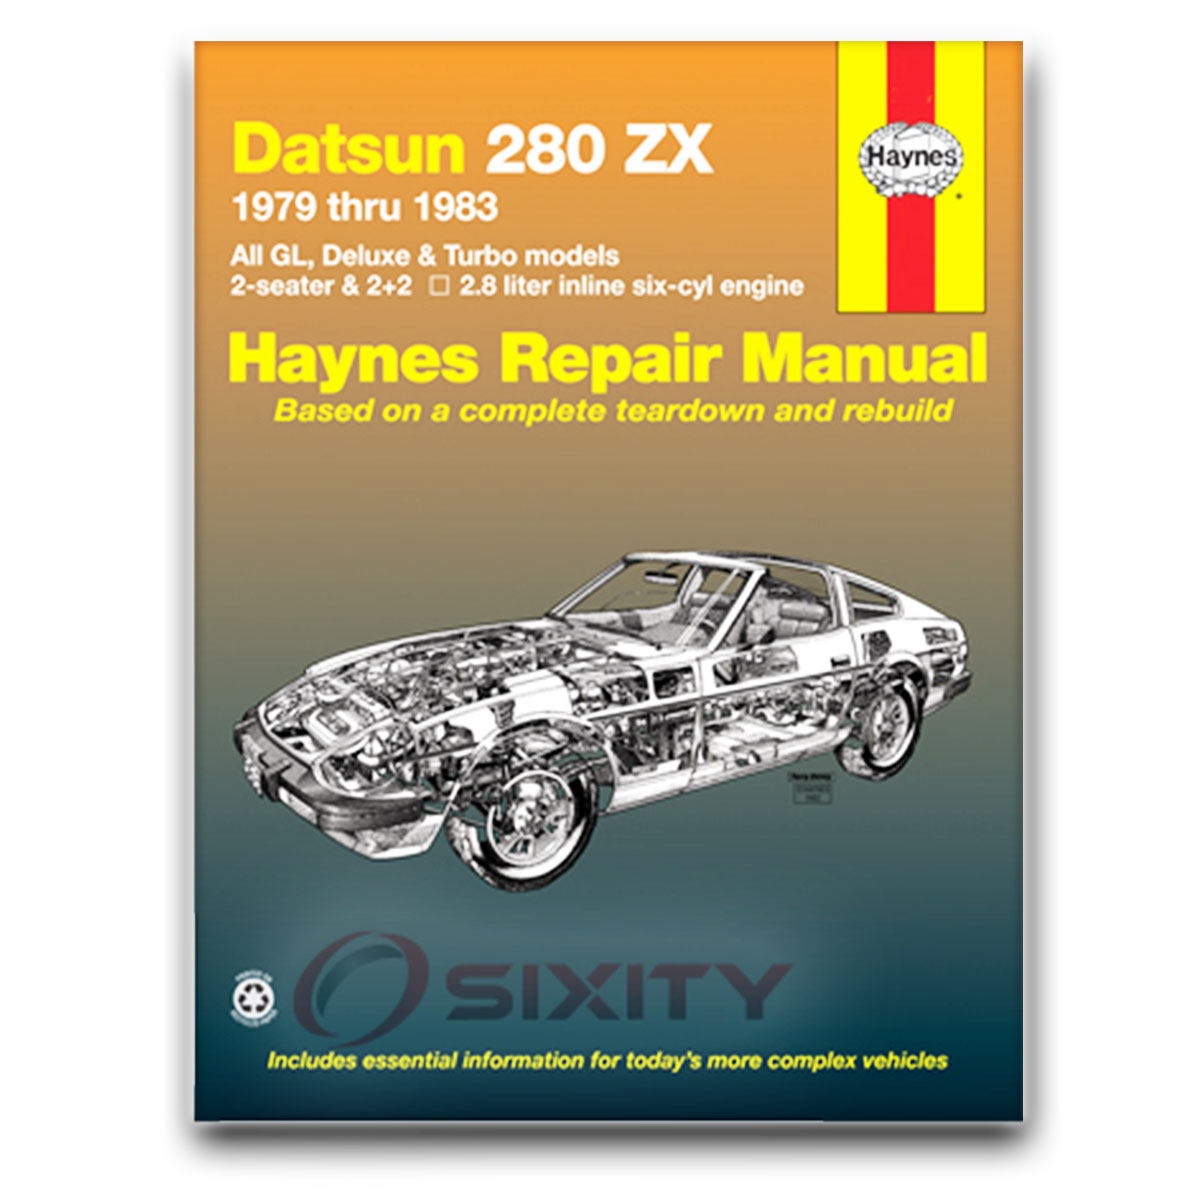 nissan 280zx haynes repair manual 2 2 gl turbo base shop service rh ebay com 2 Liters in Ounces 2 Liter Soda